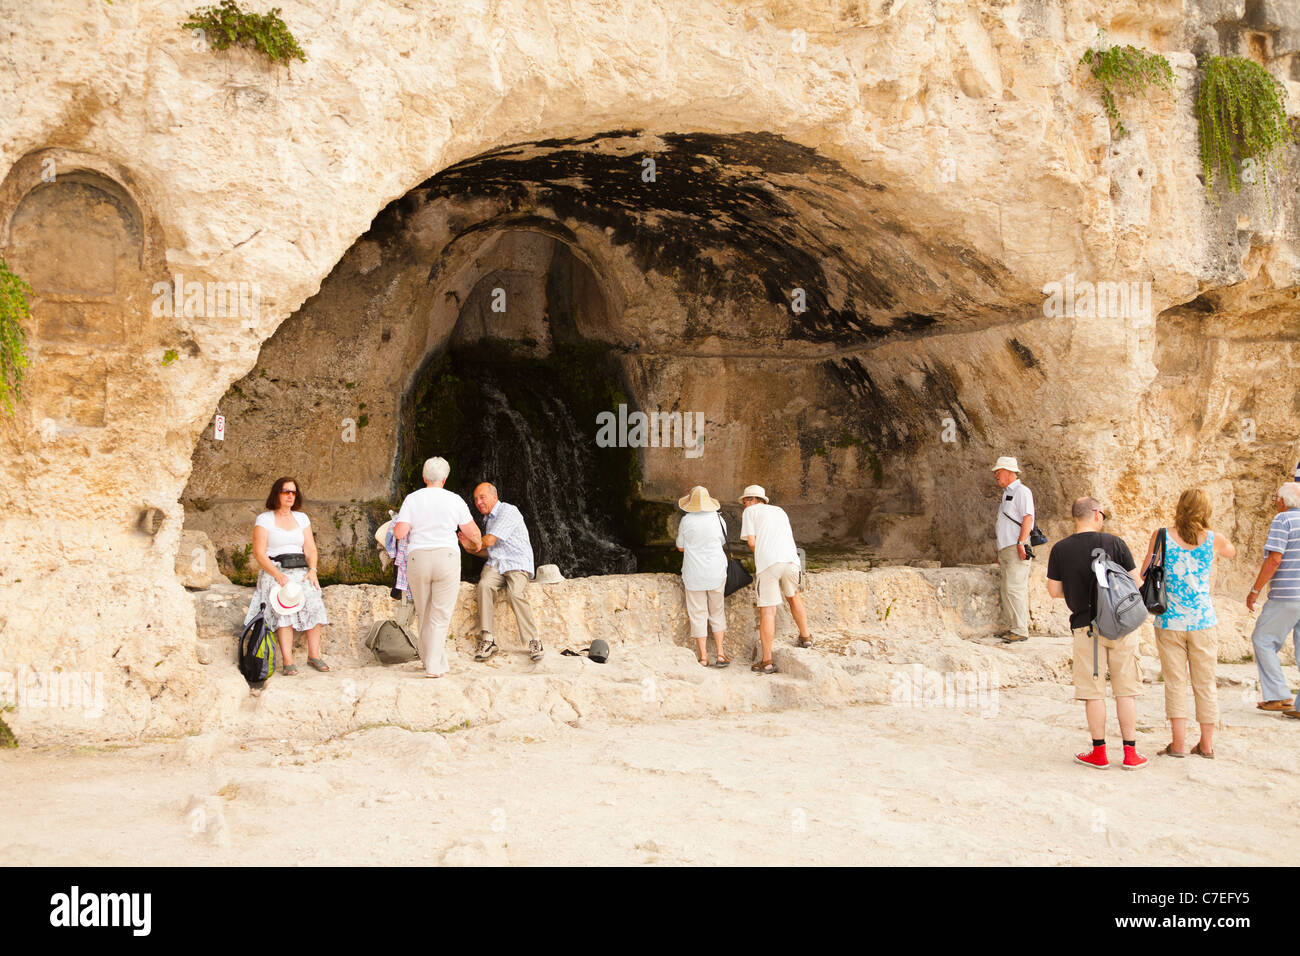 Grotta del Museion, located above the Greek Theatre, Neapolis Archaeological Park, Syracuse, Sicily, Italy - Stock Image